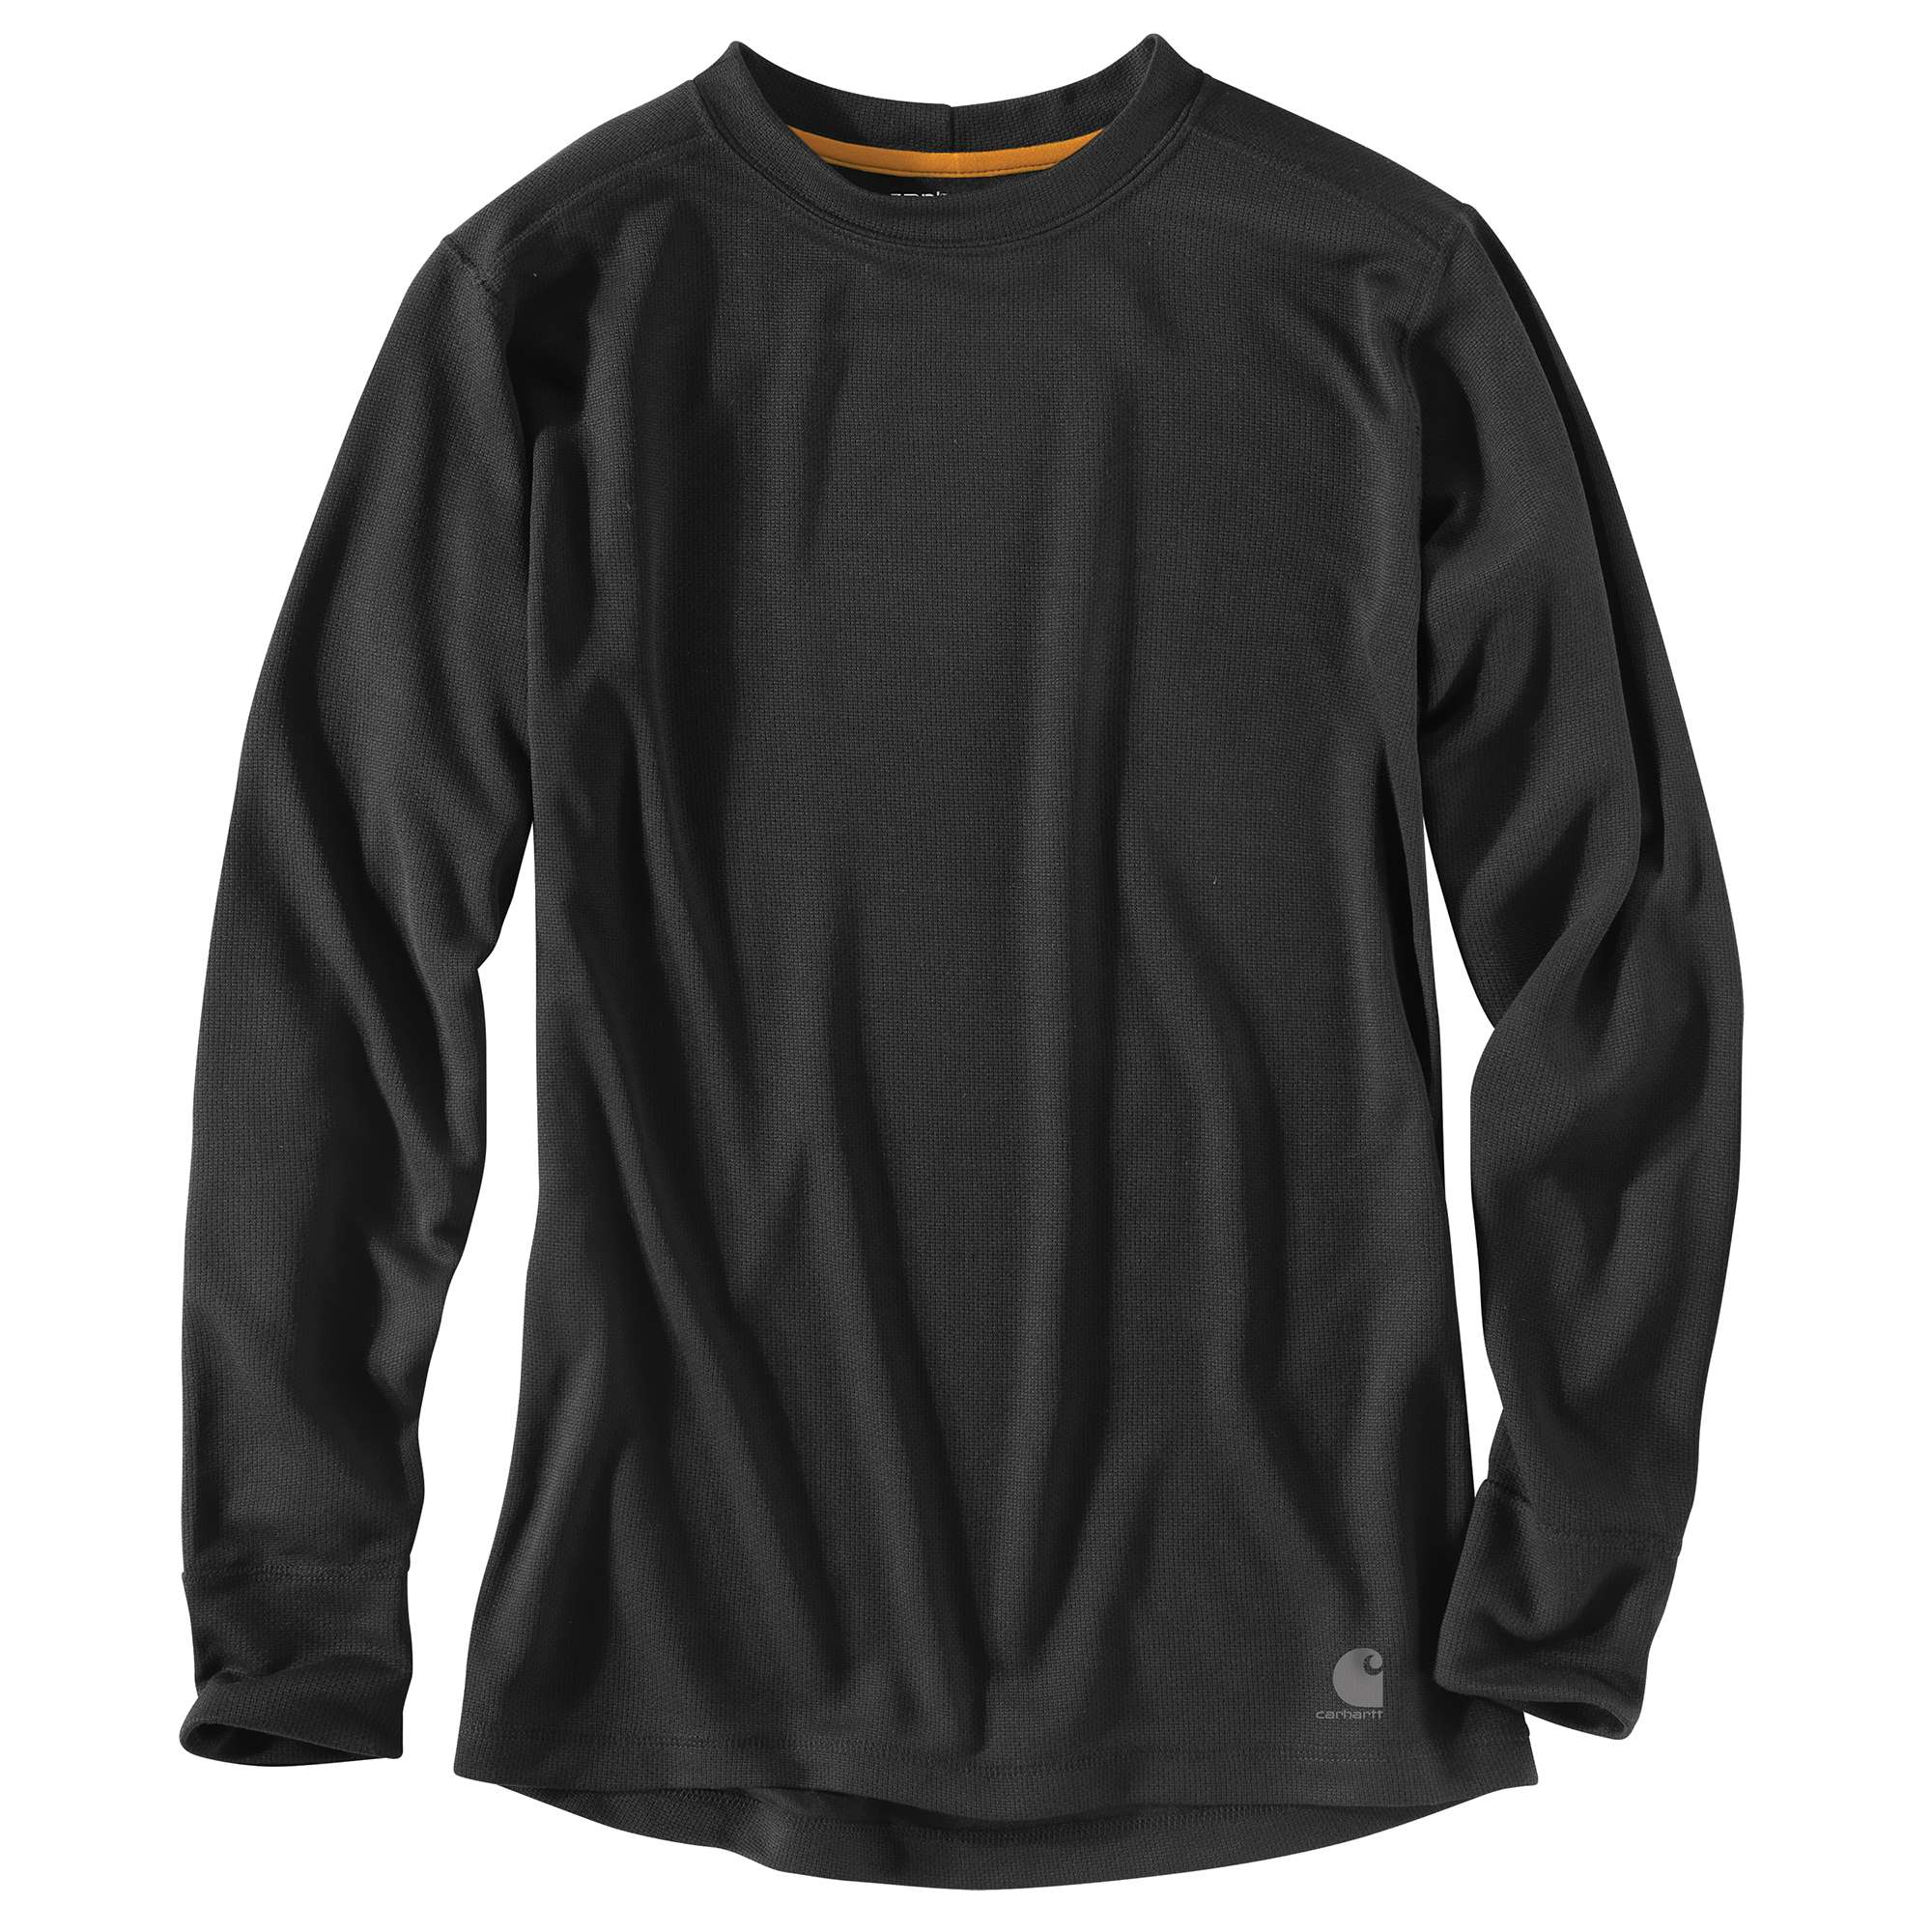 MEN'S BASE FORCE EXTREMES® COLD WEATHER CREWNECK